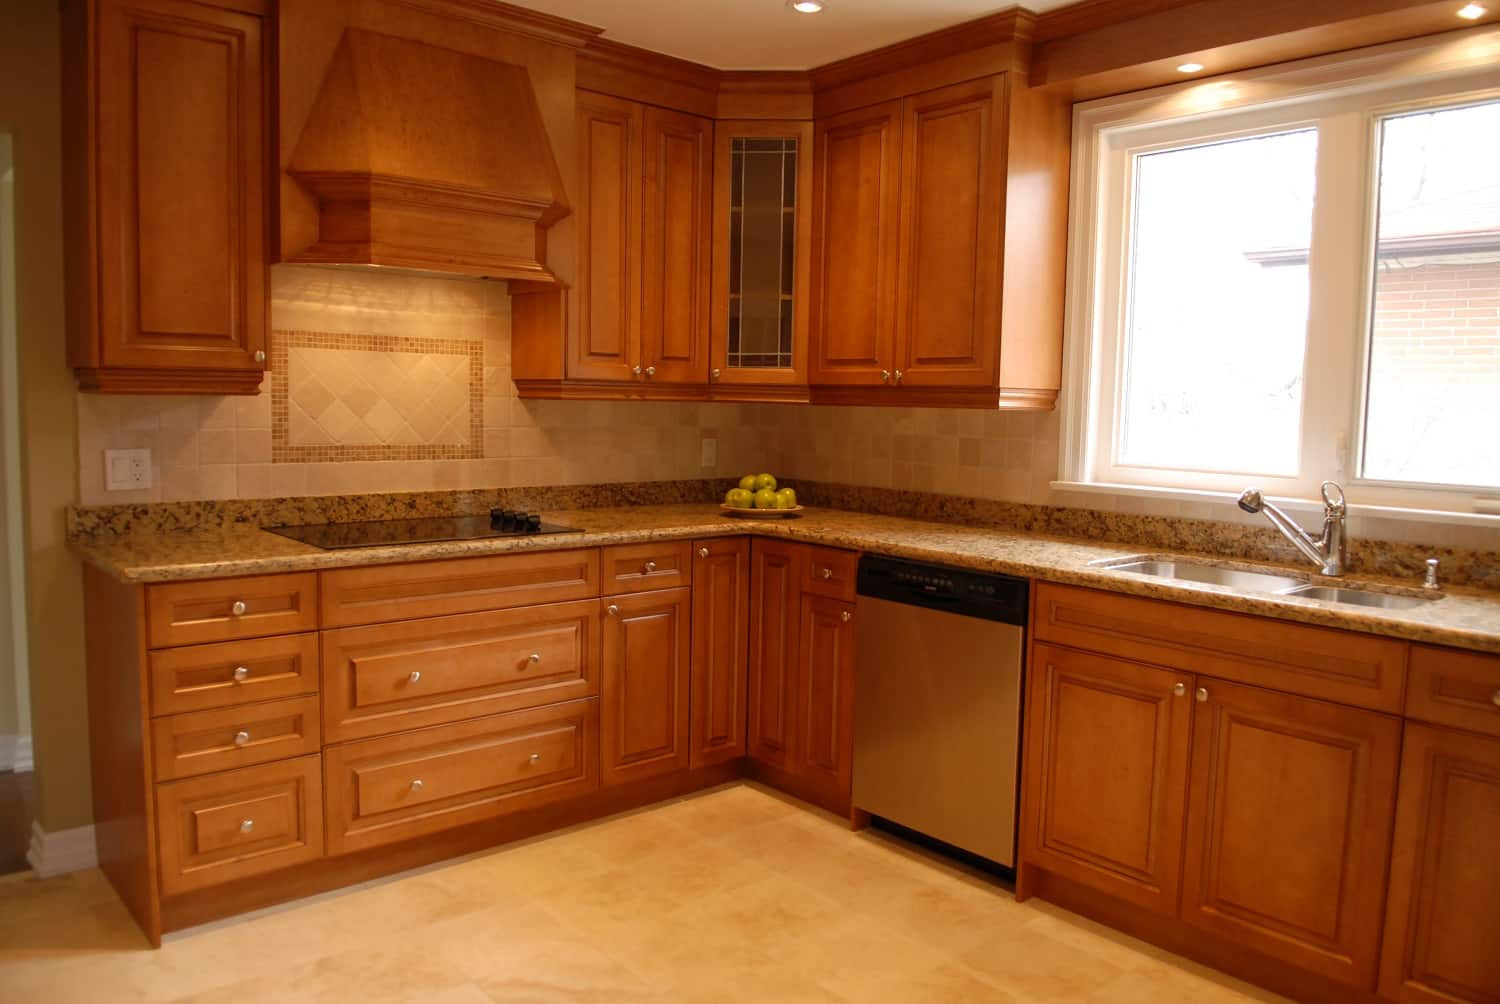 Royal Maple Natural and Chocolate glazed.__aa5__Morewood Cres.  North York.